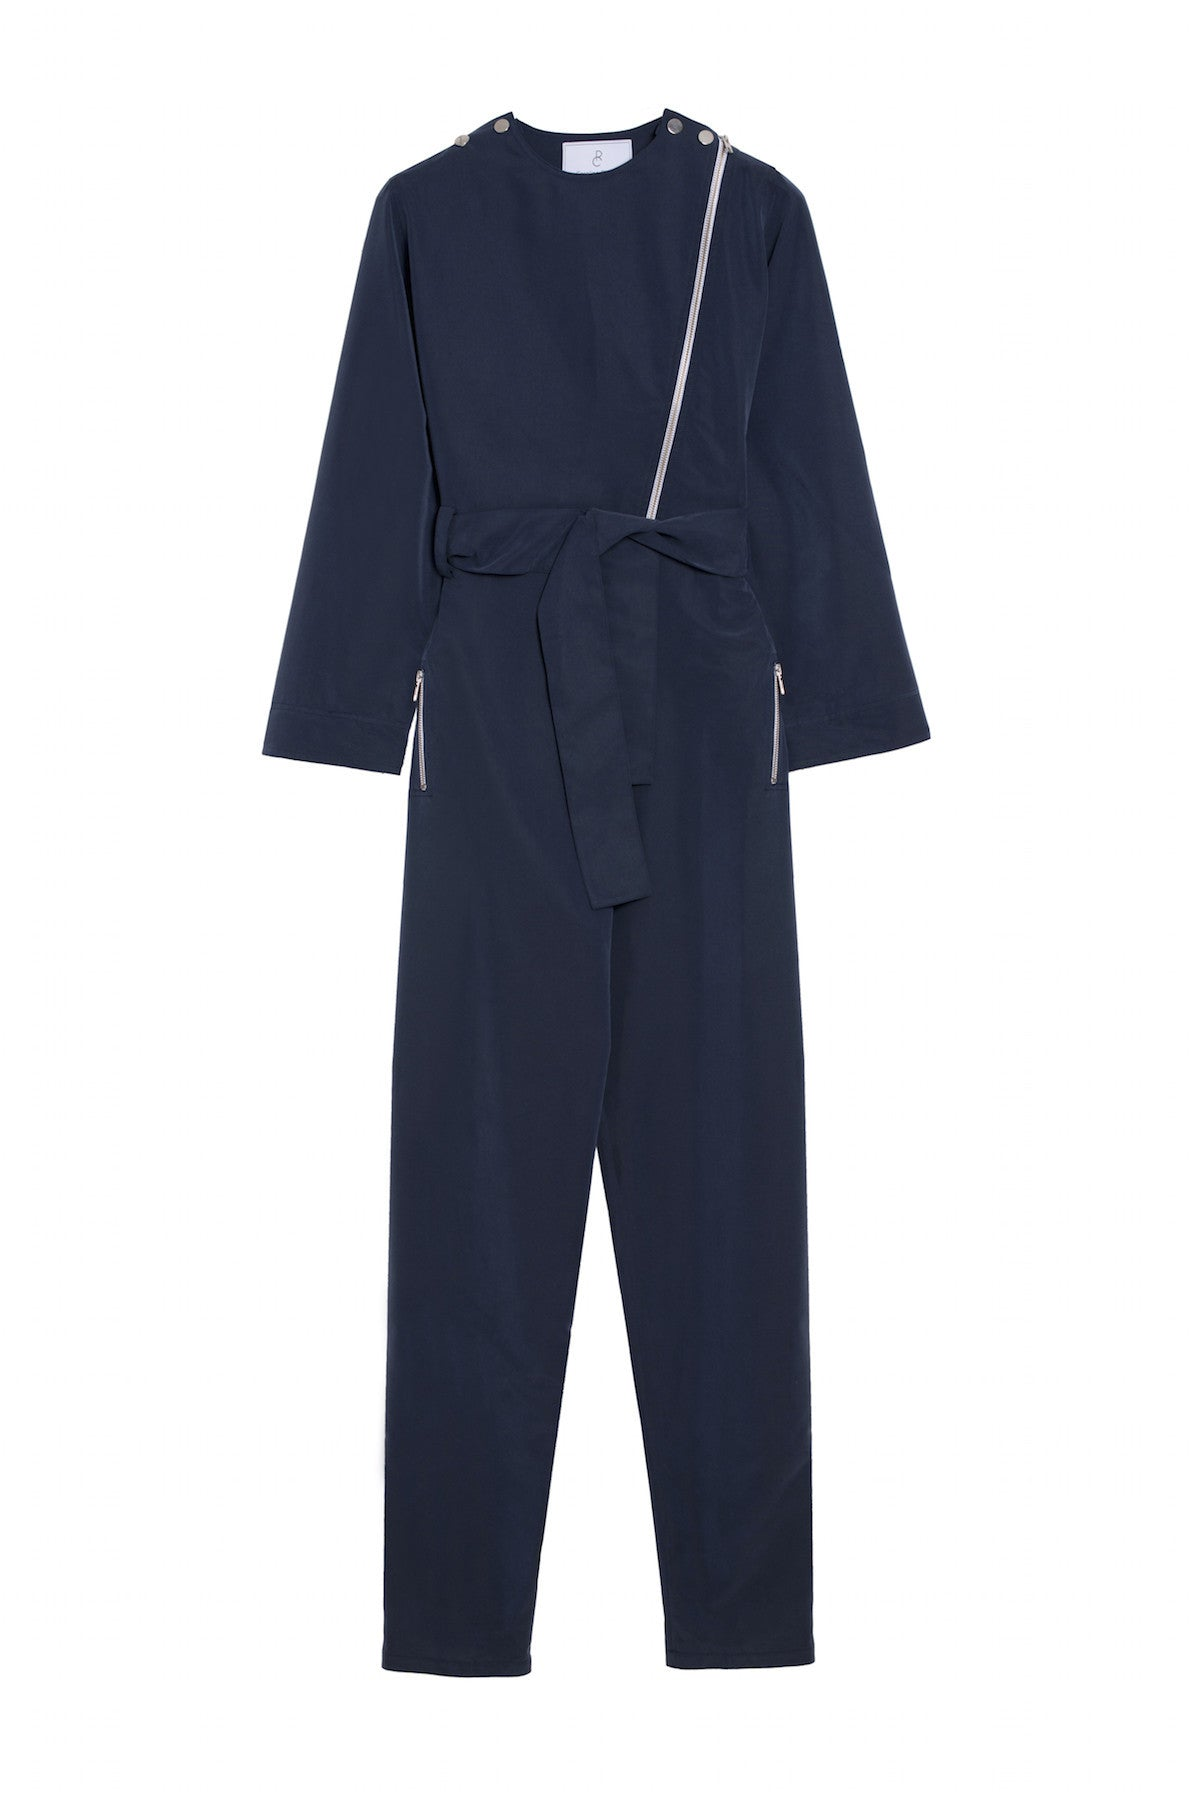 zip navy blue jumpsuit